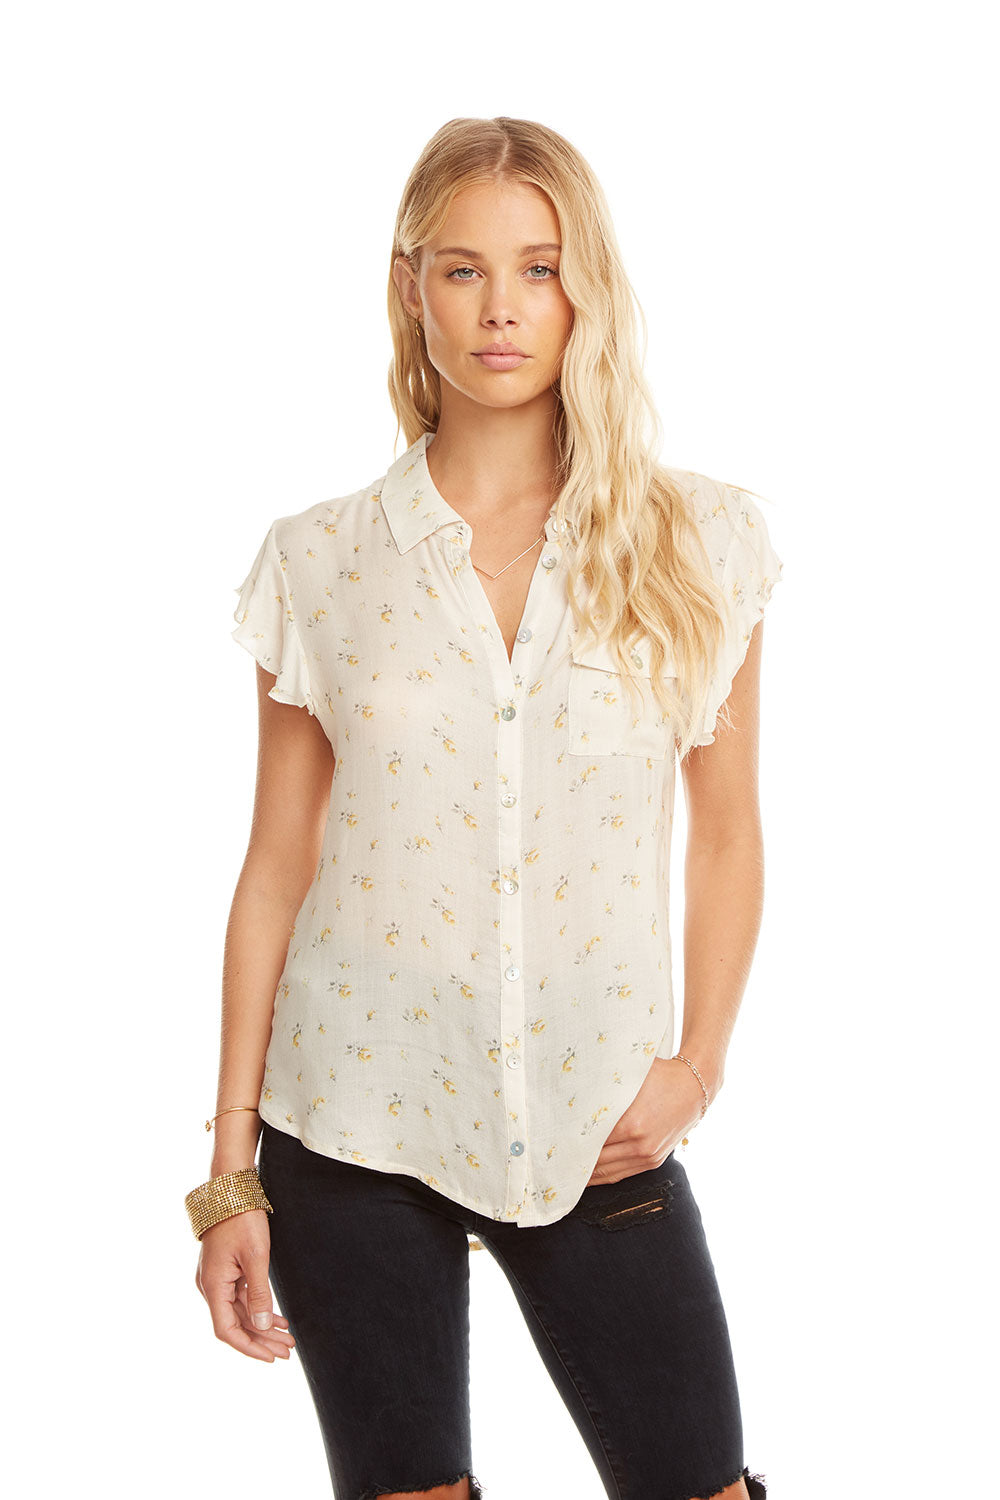 5f351dd8 Gauze Flutter Sleeve Button Down Shirttail Shirt, WOMENS,  chaserbrand.com,chaser clothing